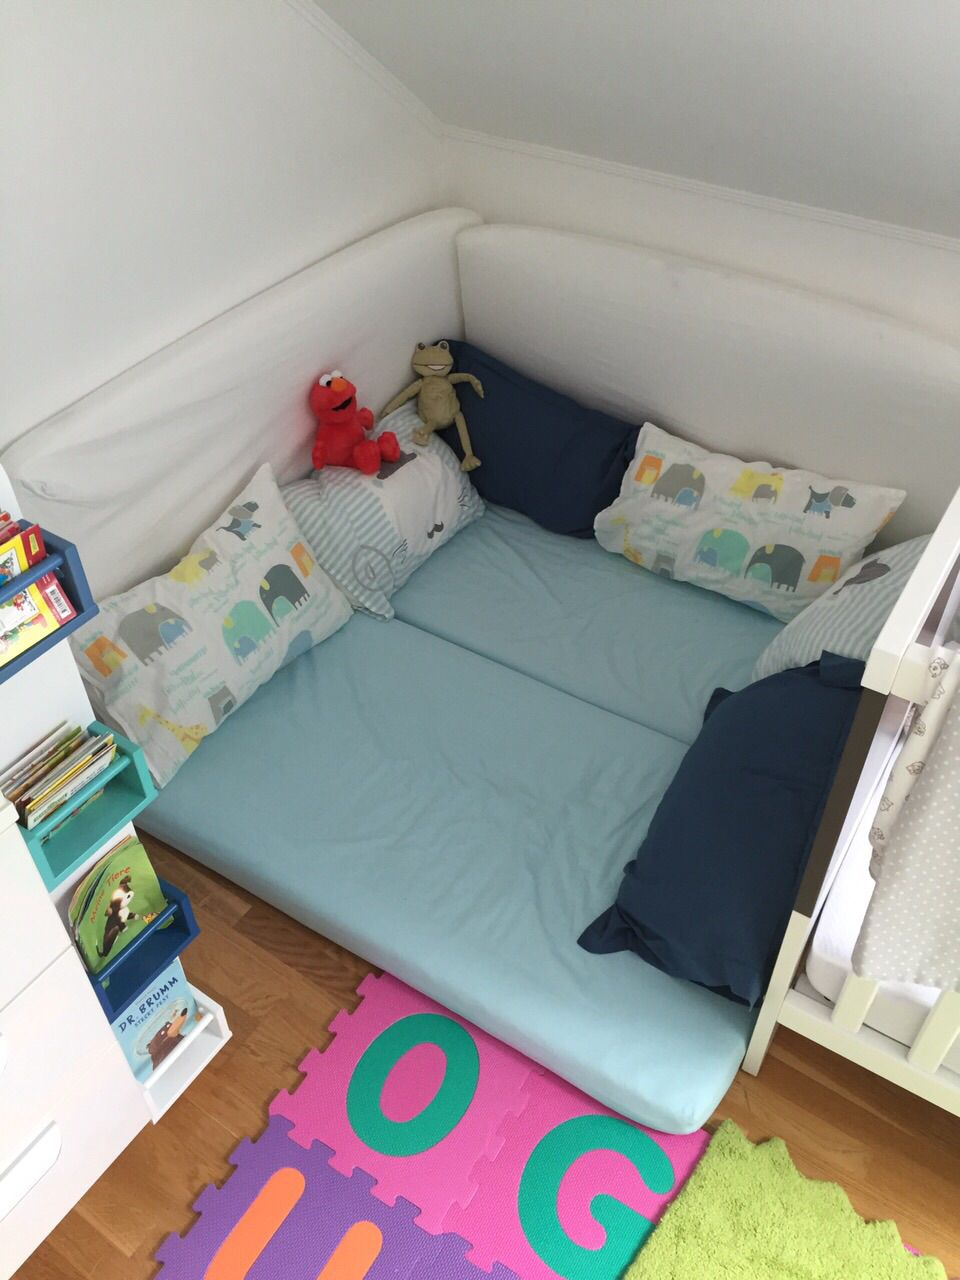 Kuschelecke Kinderzimmer Kleinkinder Playroom Kids Reading Corner In The Bedroom Kinderzimmer